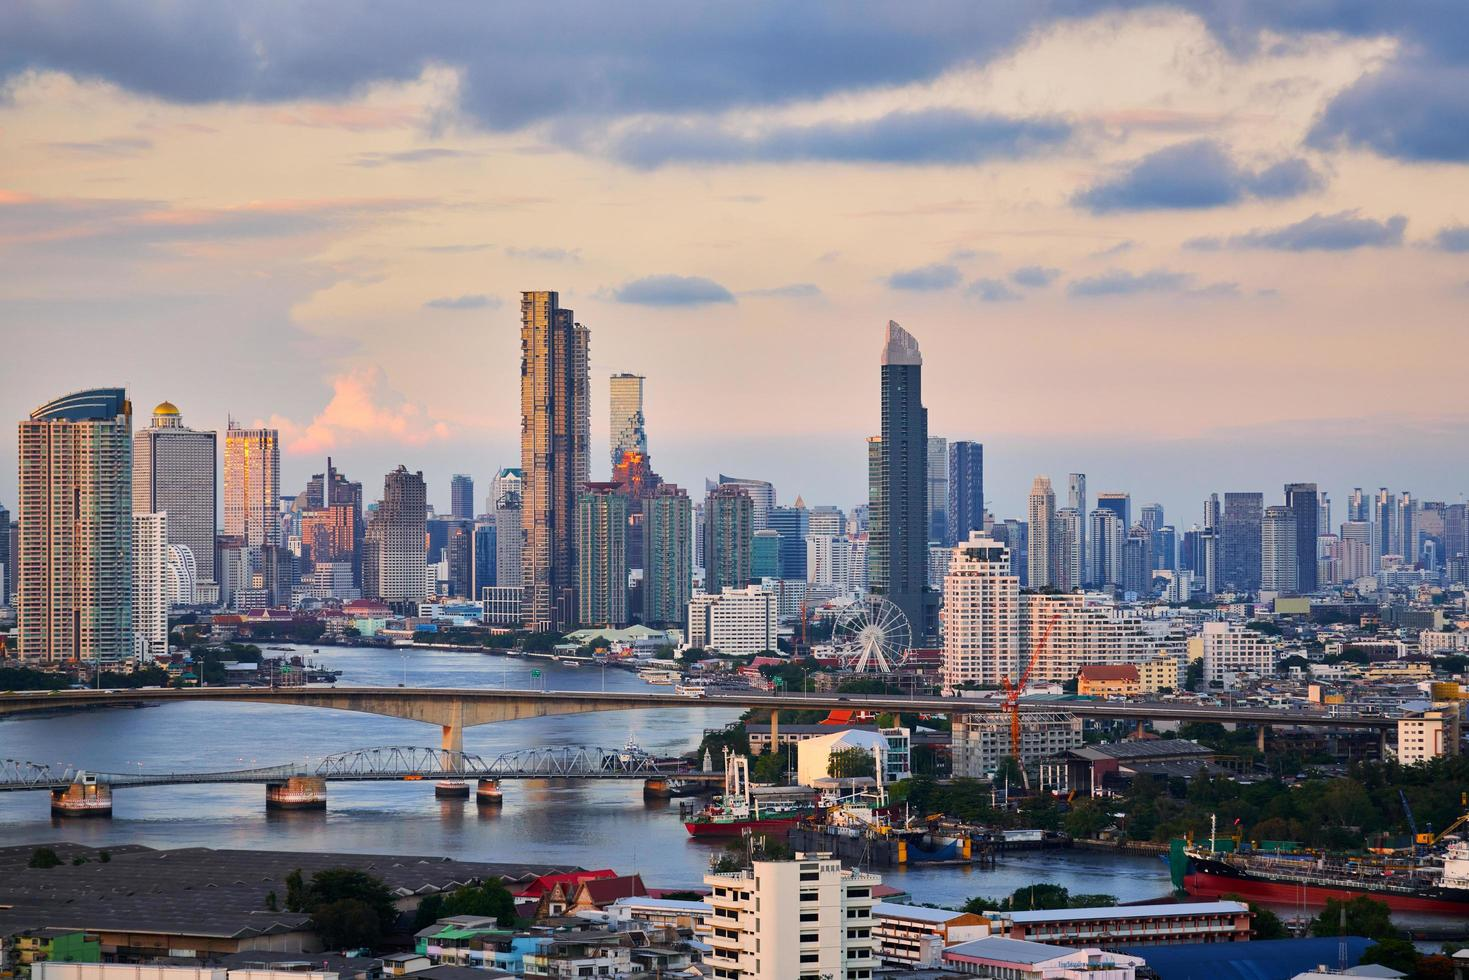 Motives and Opportunities of Real Estate in Thailand